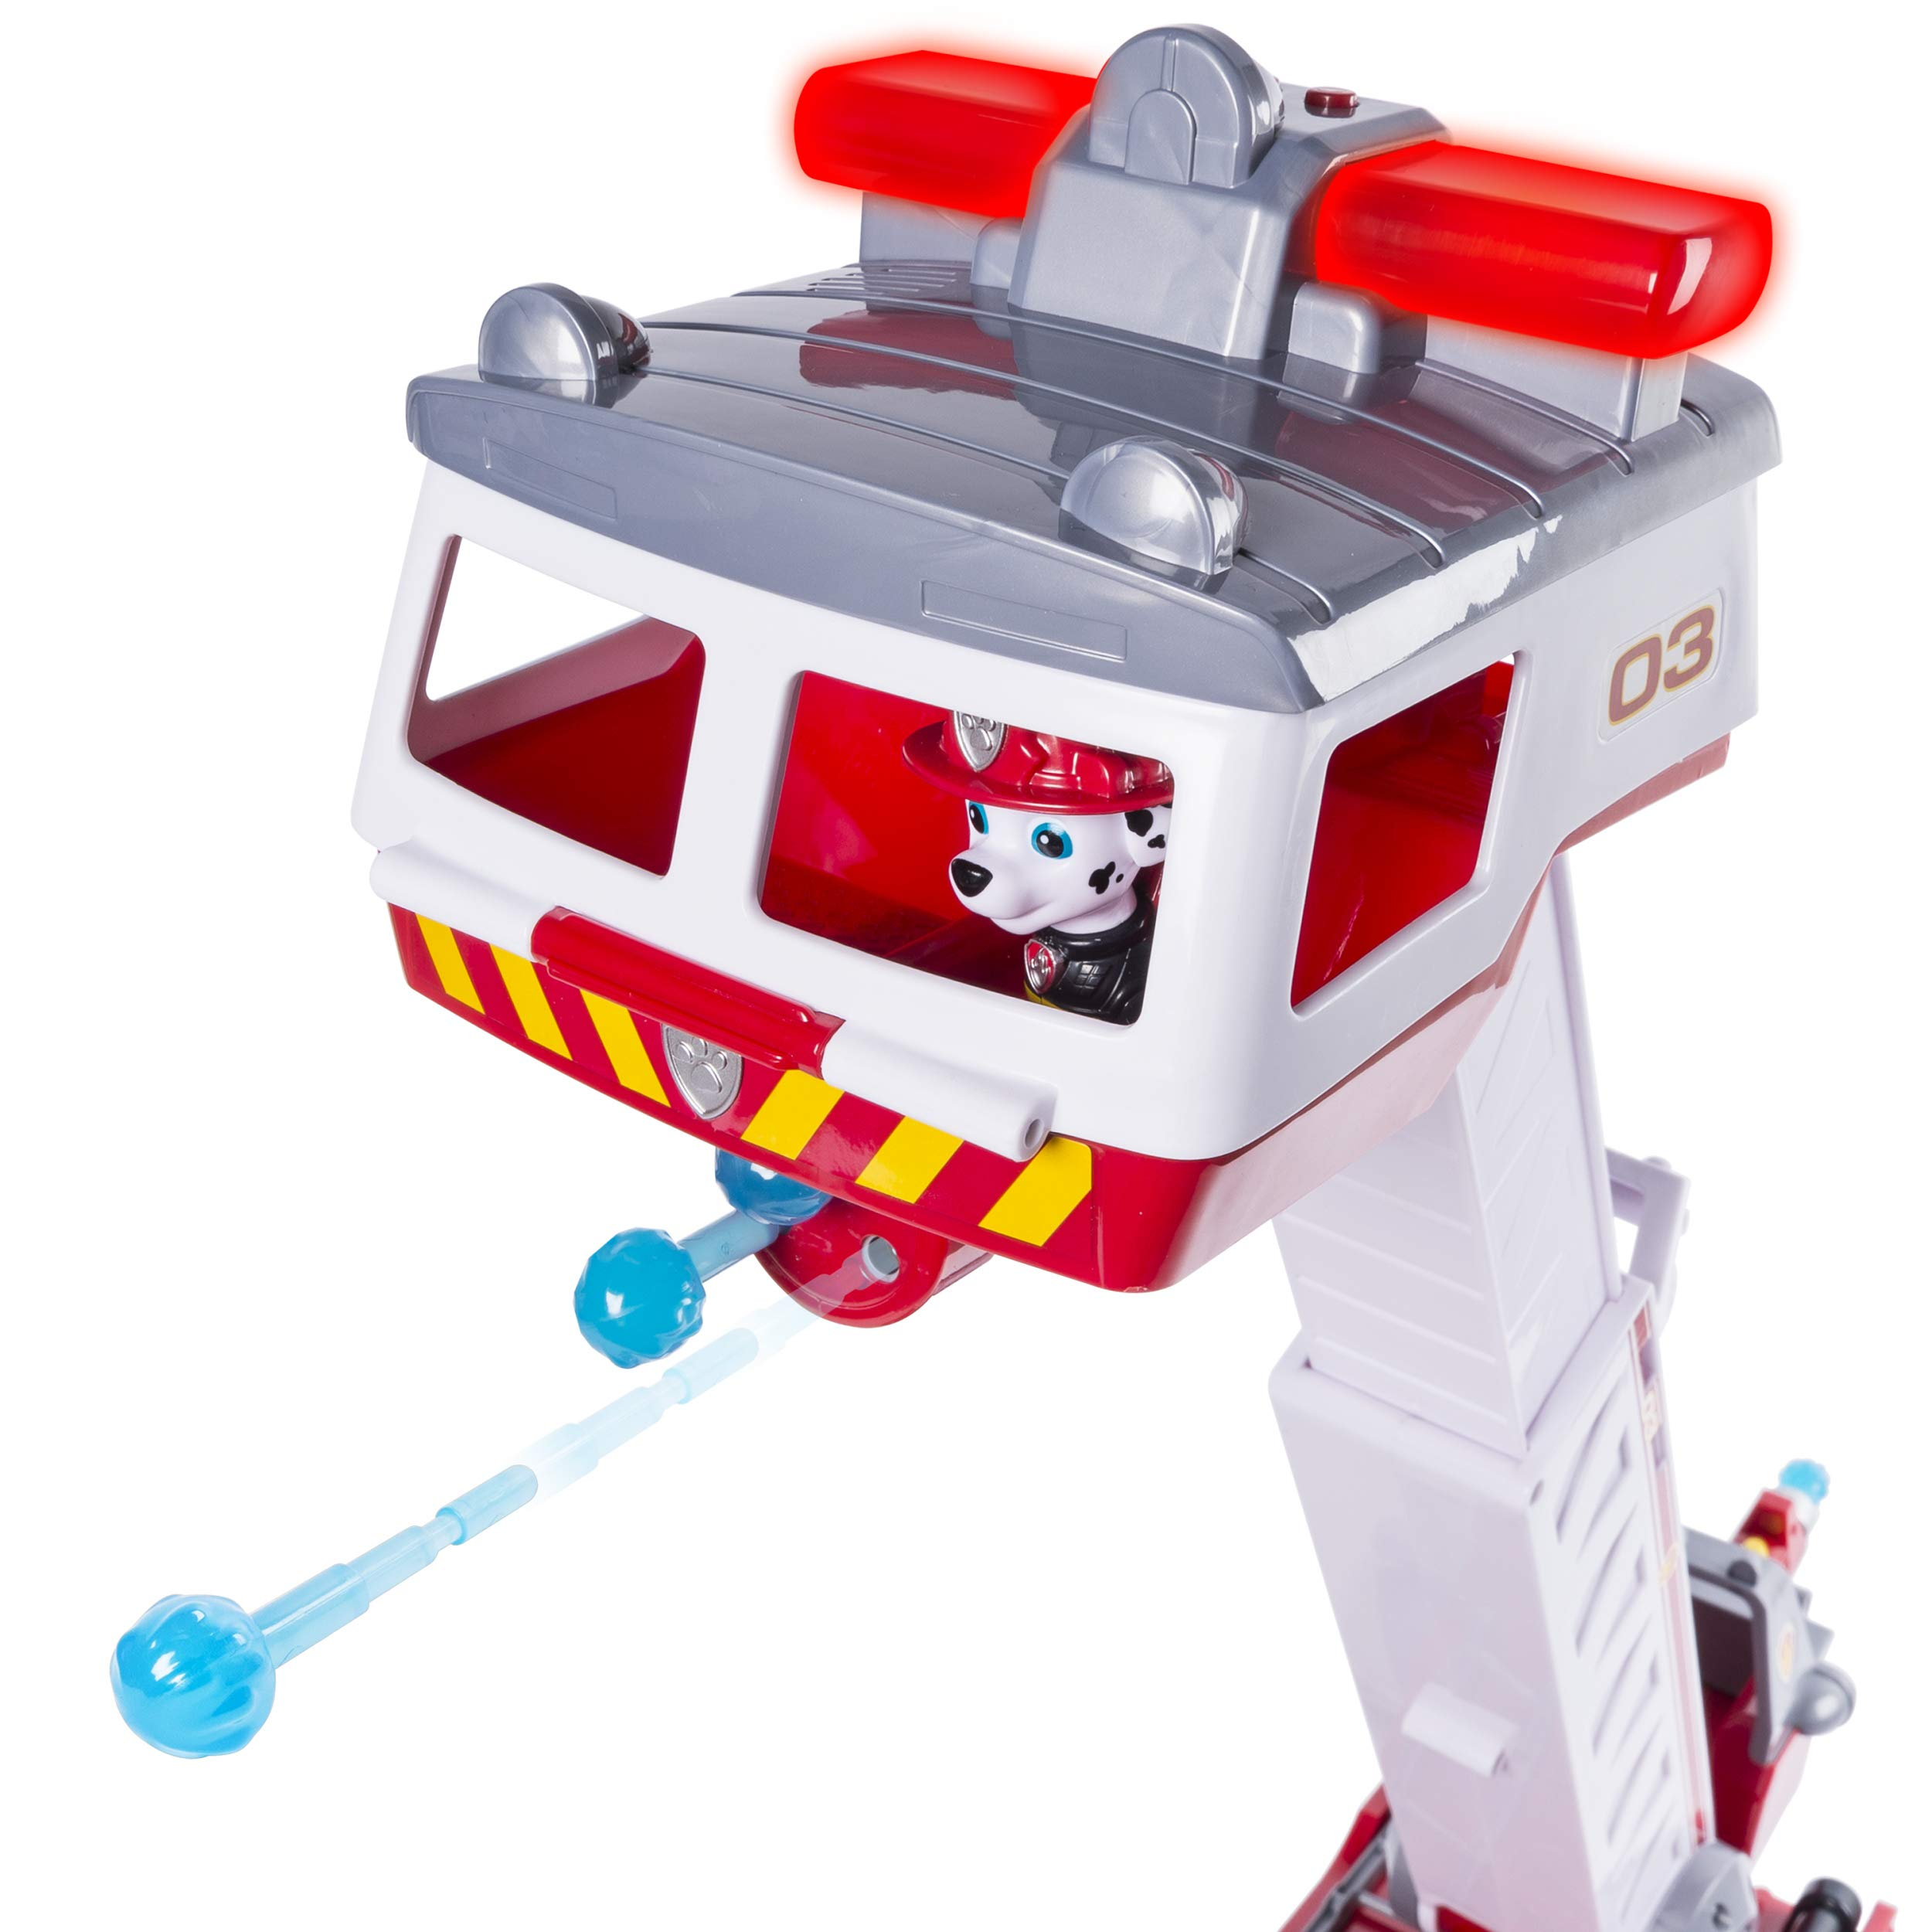 PAW Patrol - Ultimate Rescue Fire Truck with Extendable 2 ft. Tall Ladder, for Ages 3 and Up by Paw Patrol (Image #10)